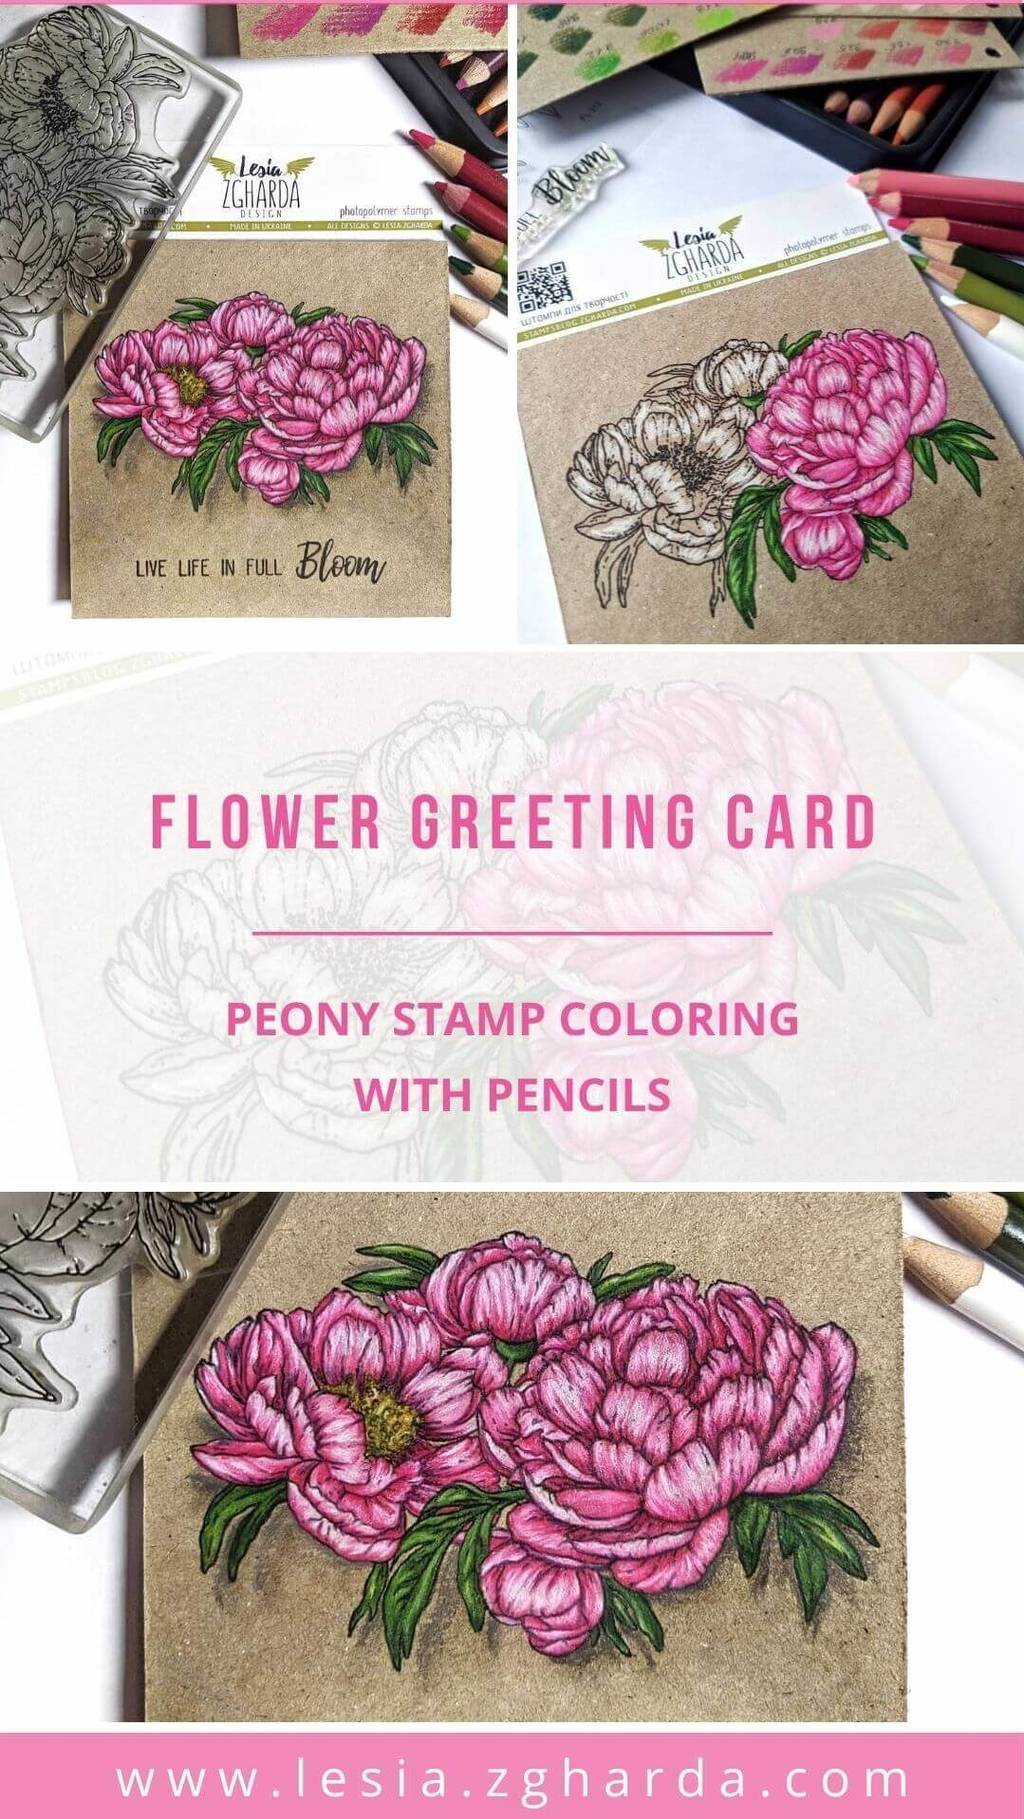 Peony flower greeting card | Lesia Zgharda Stamps. Oh, that's a great idea for mother's day cards, love cards, birthday cards, wedding day cards, and handmade wedding invitations, and other handmade spring cards. Welcome!